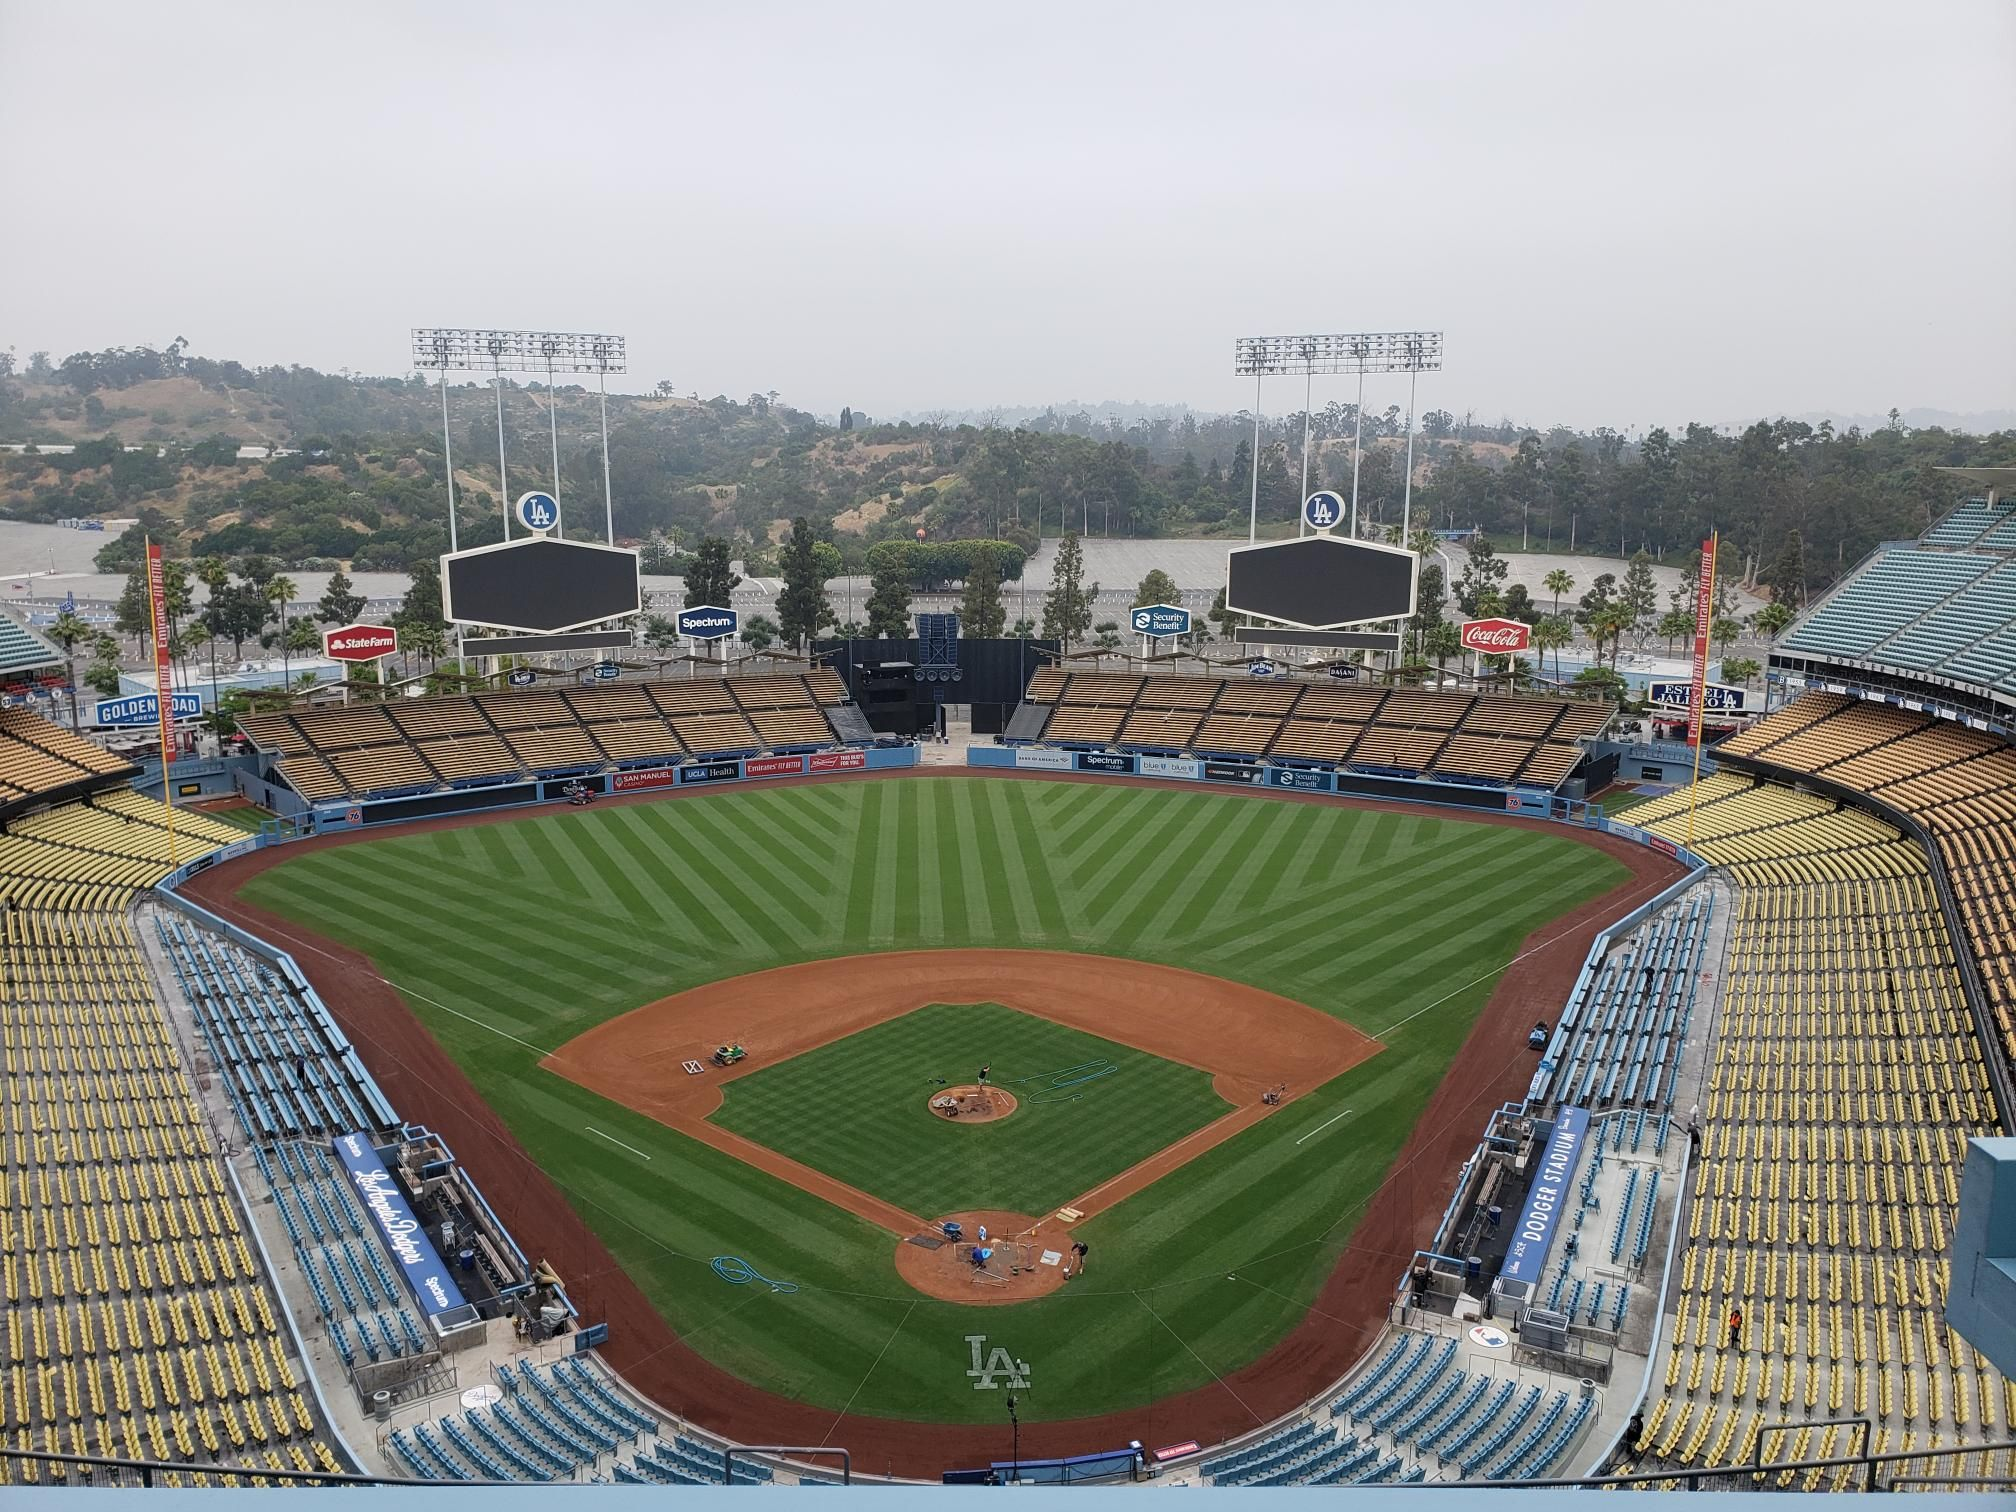 Dodger Stadium Home To The La Dodgers Mlb Stadiums Sports Stadium Dodger Stadium